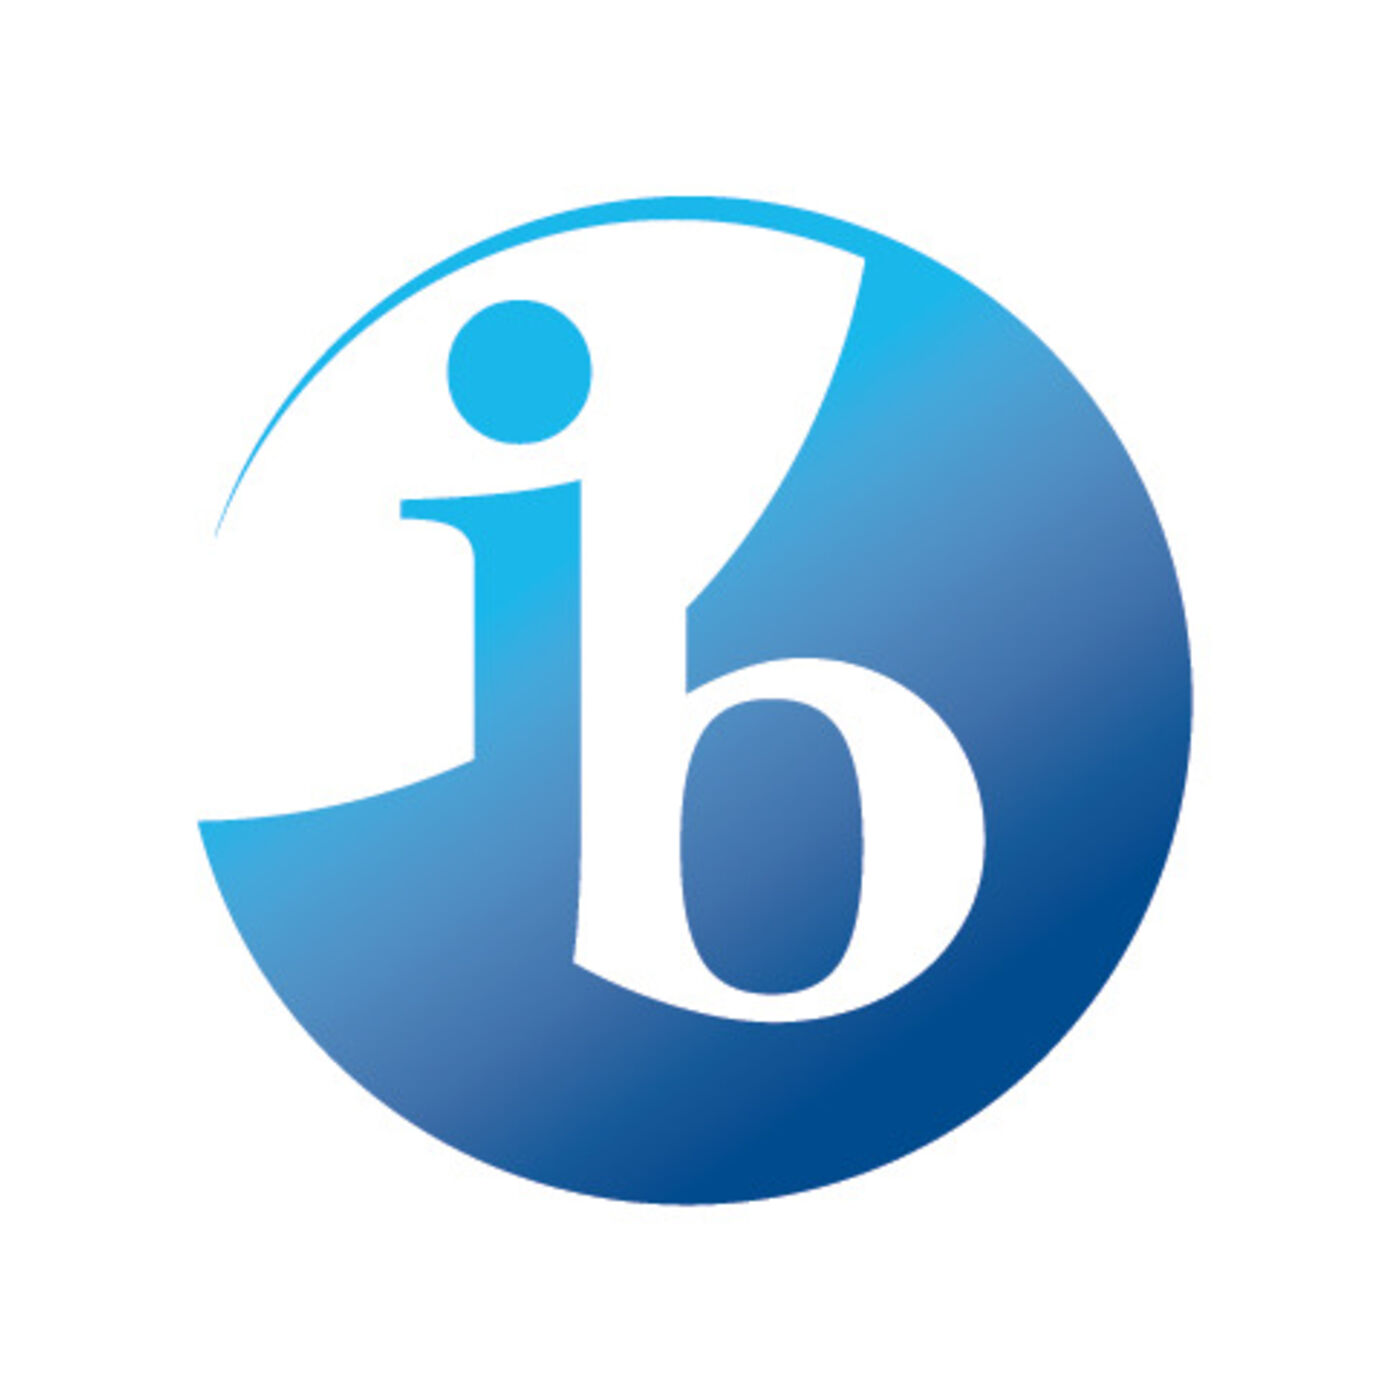 Becoming an IB School - Episode 7 - Policies and a virtual consultancy